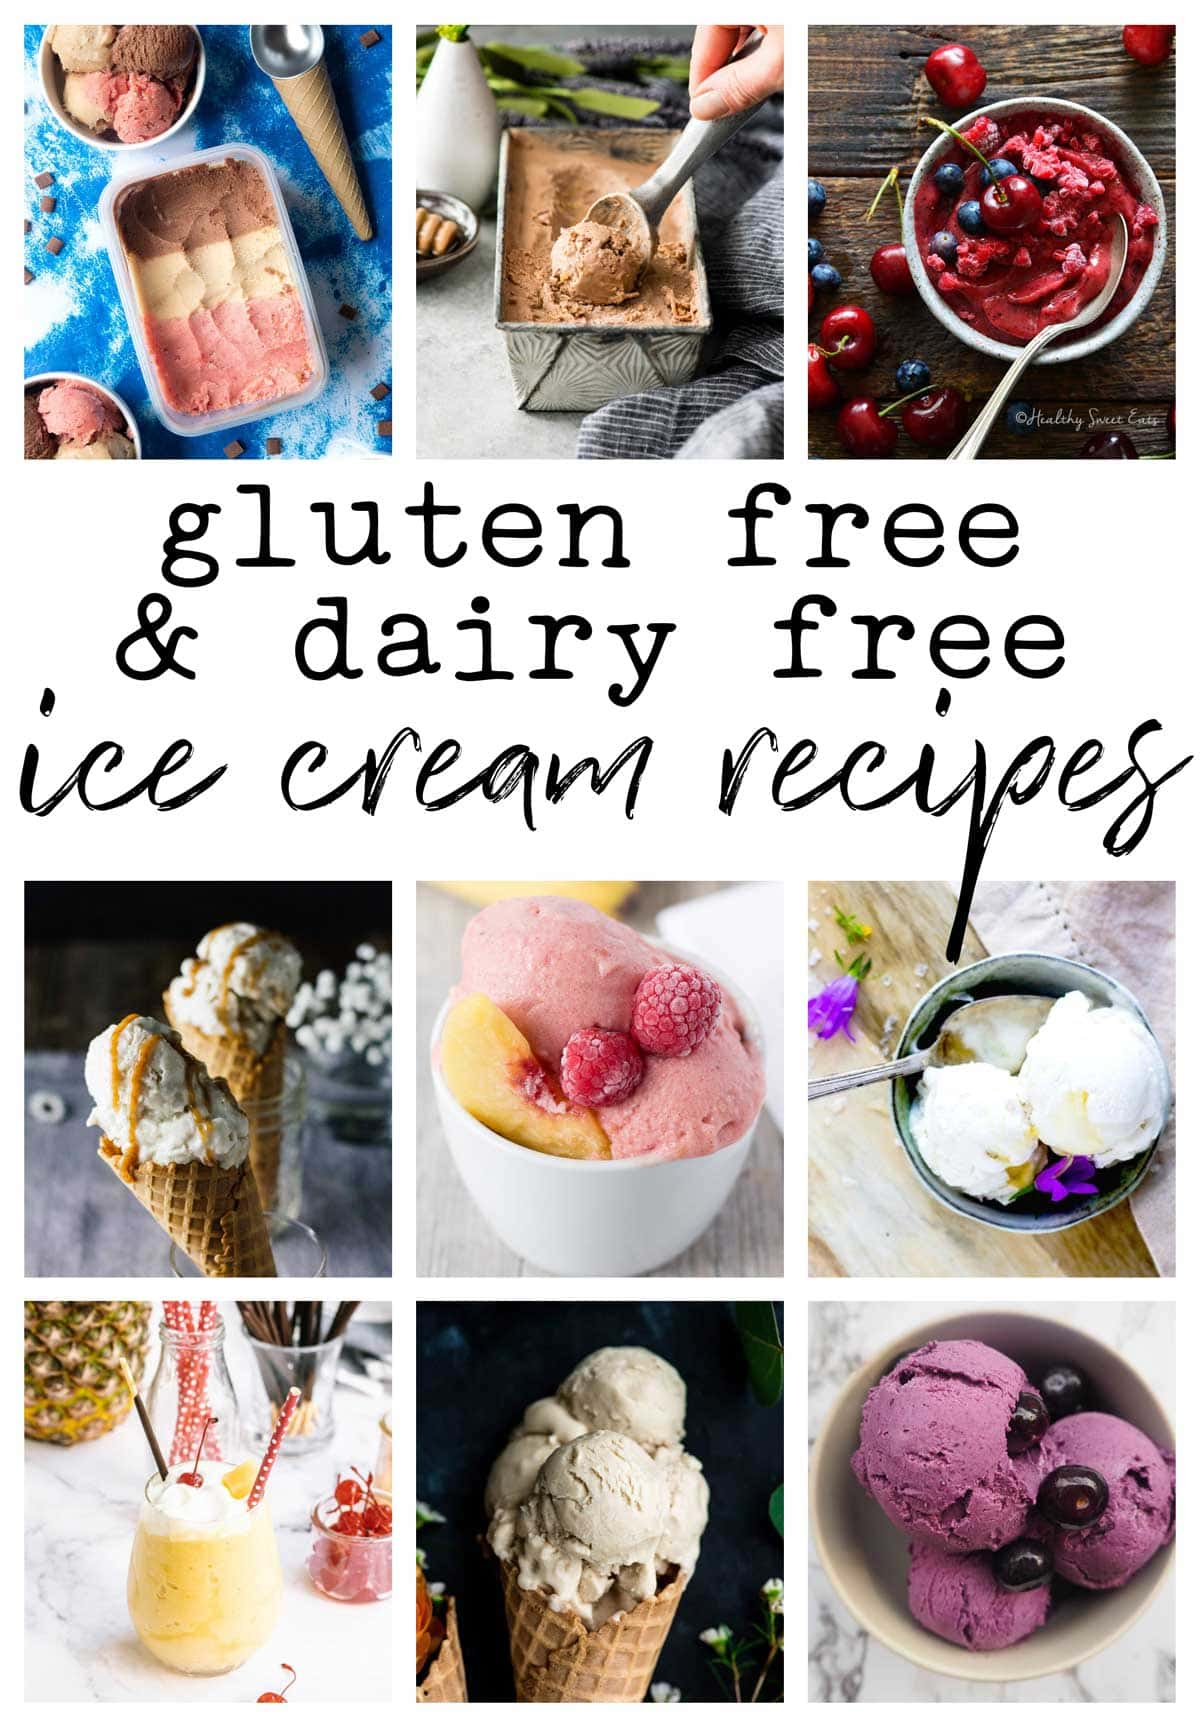 photo collage of various homemade dairy free ice cream recipes